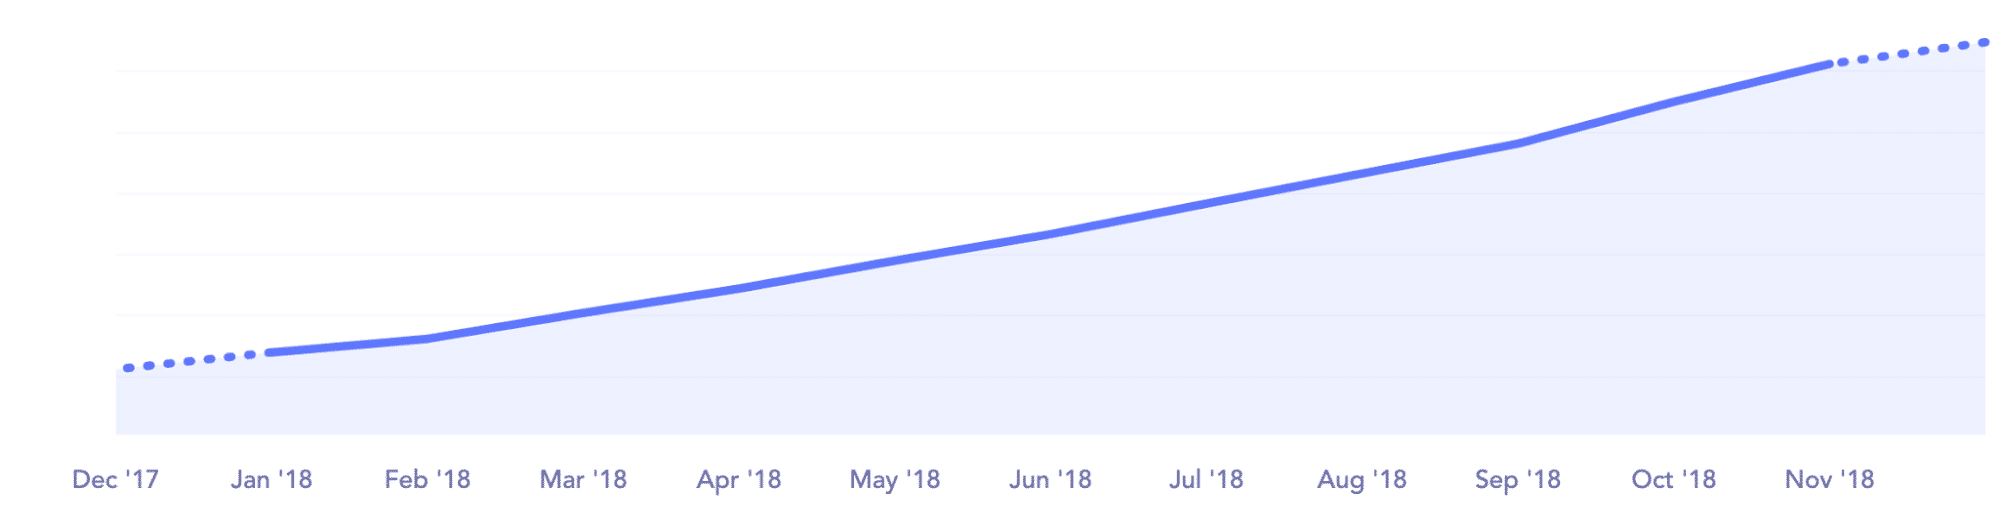 Client growth rate